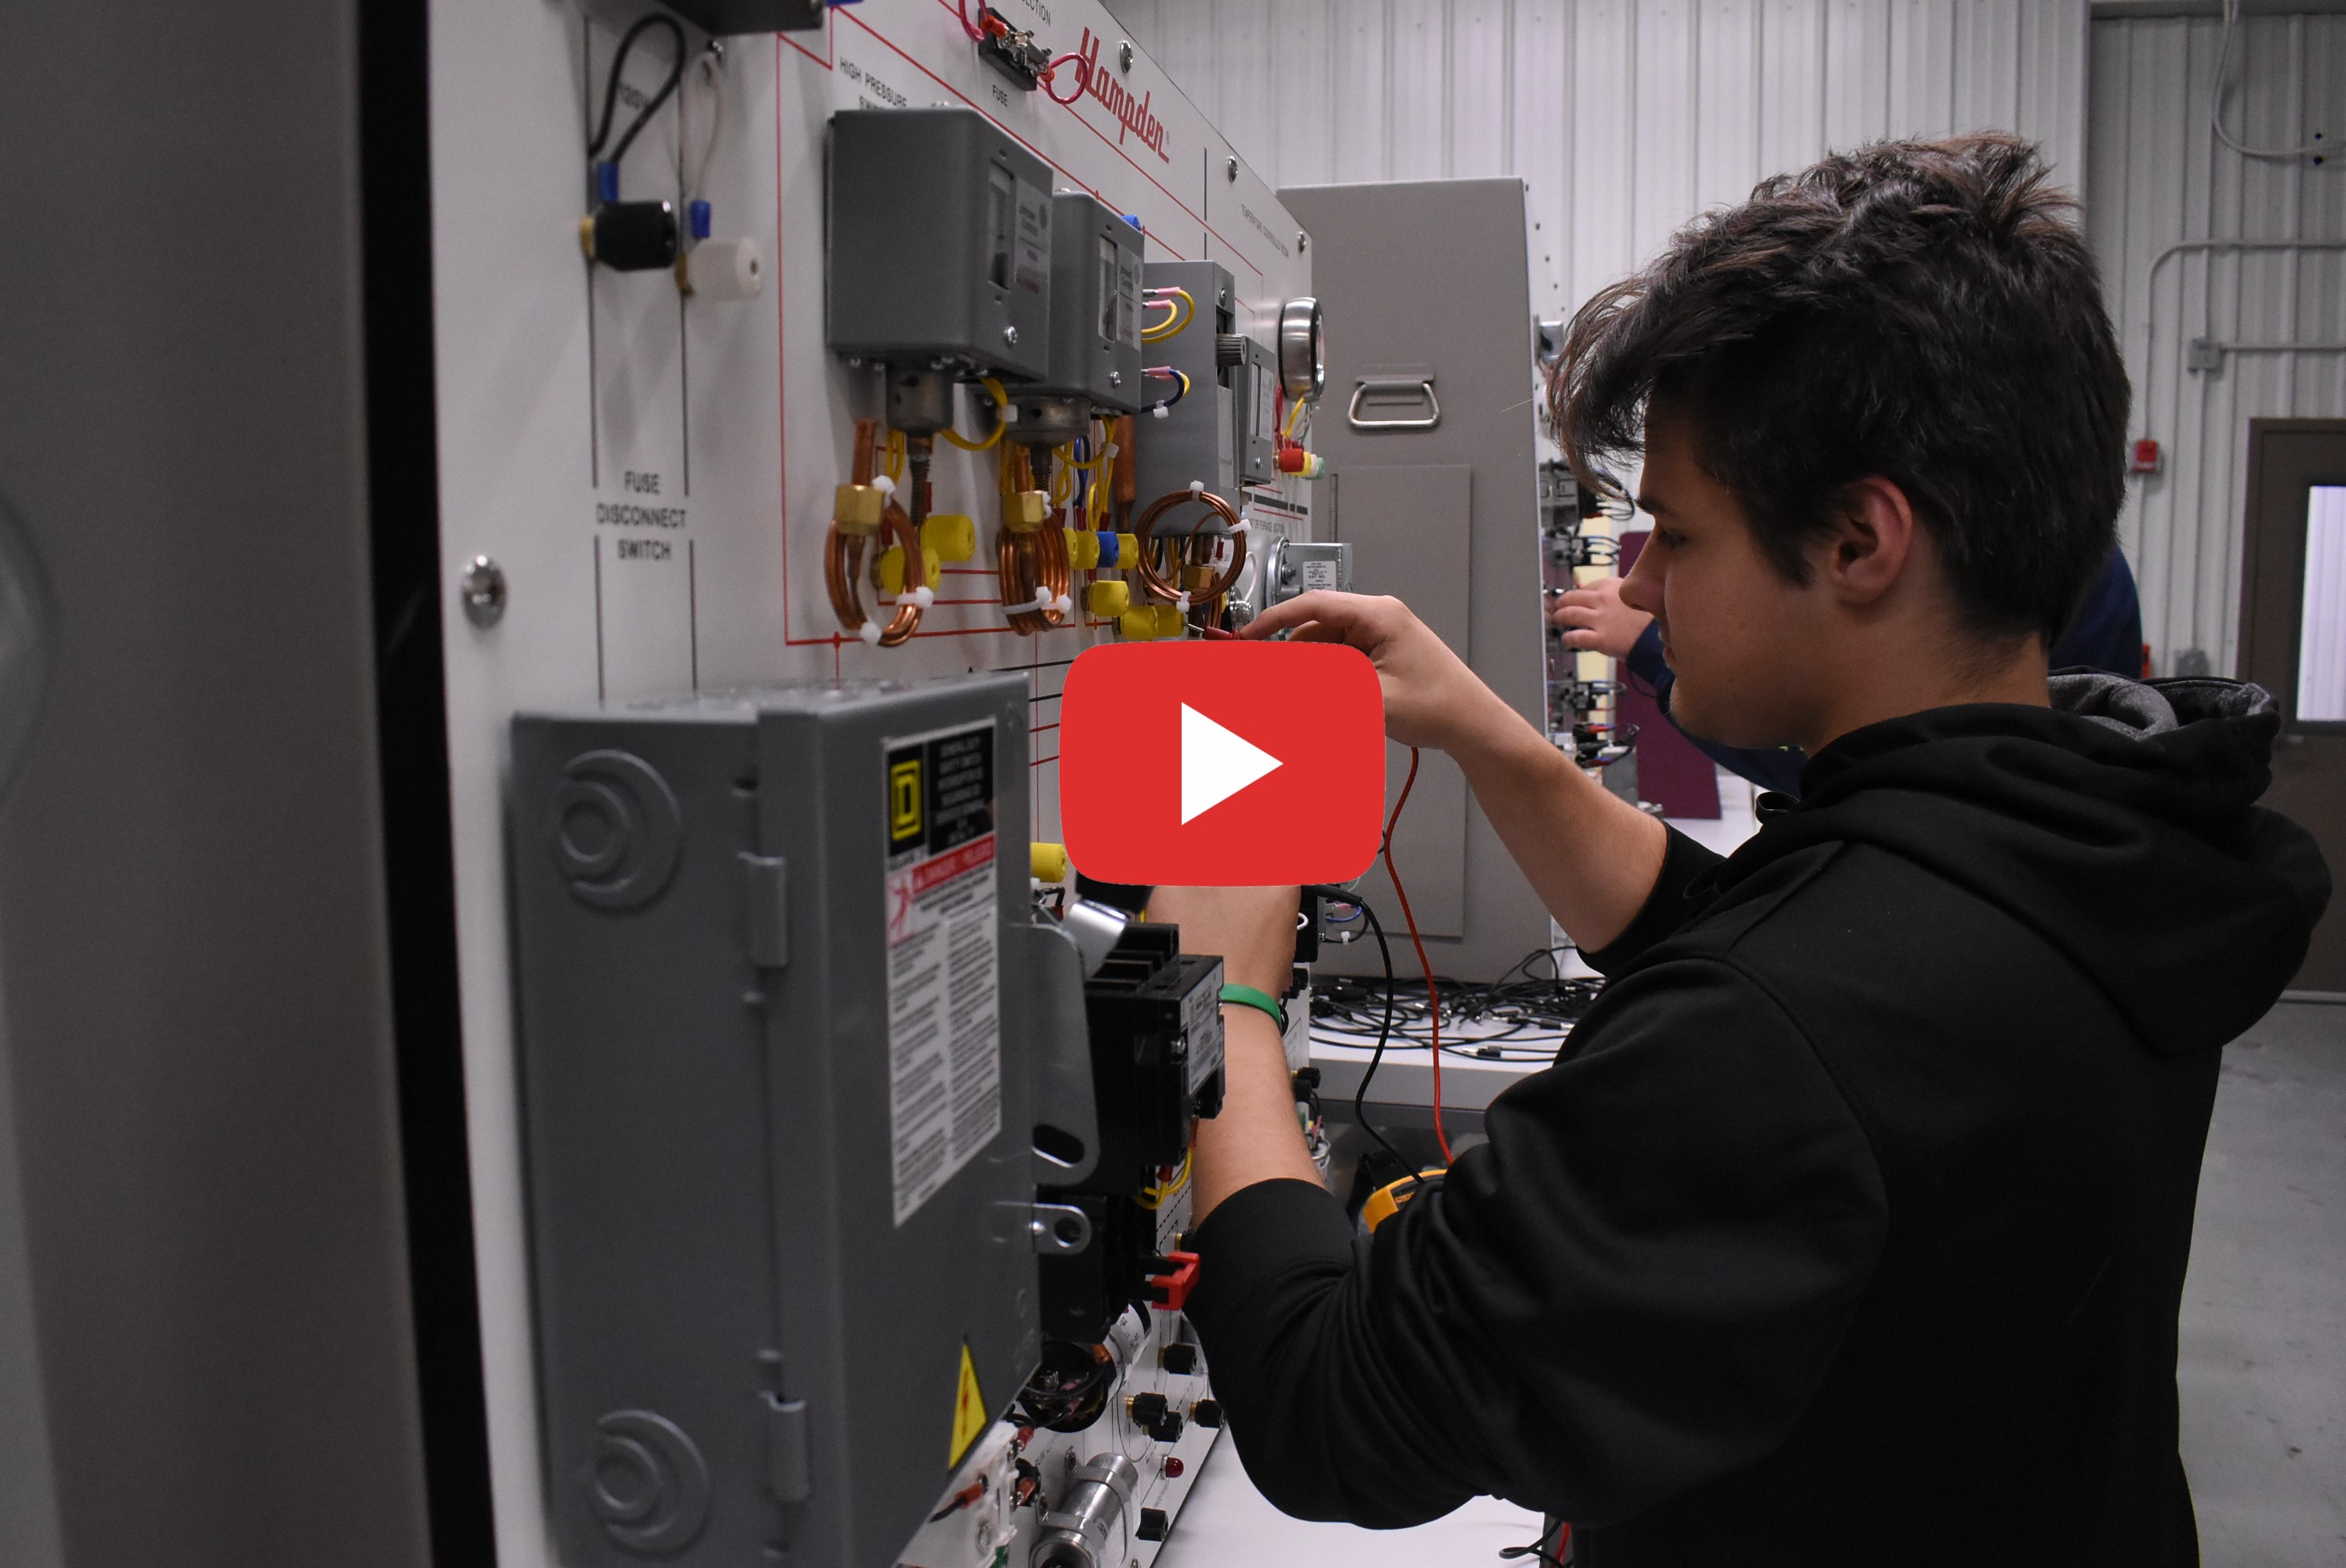 Student and electrical box